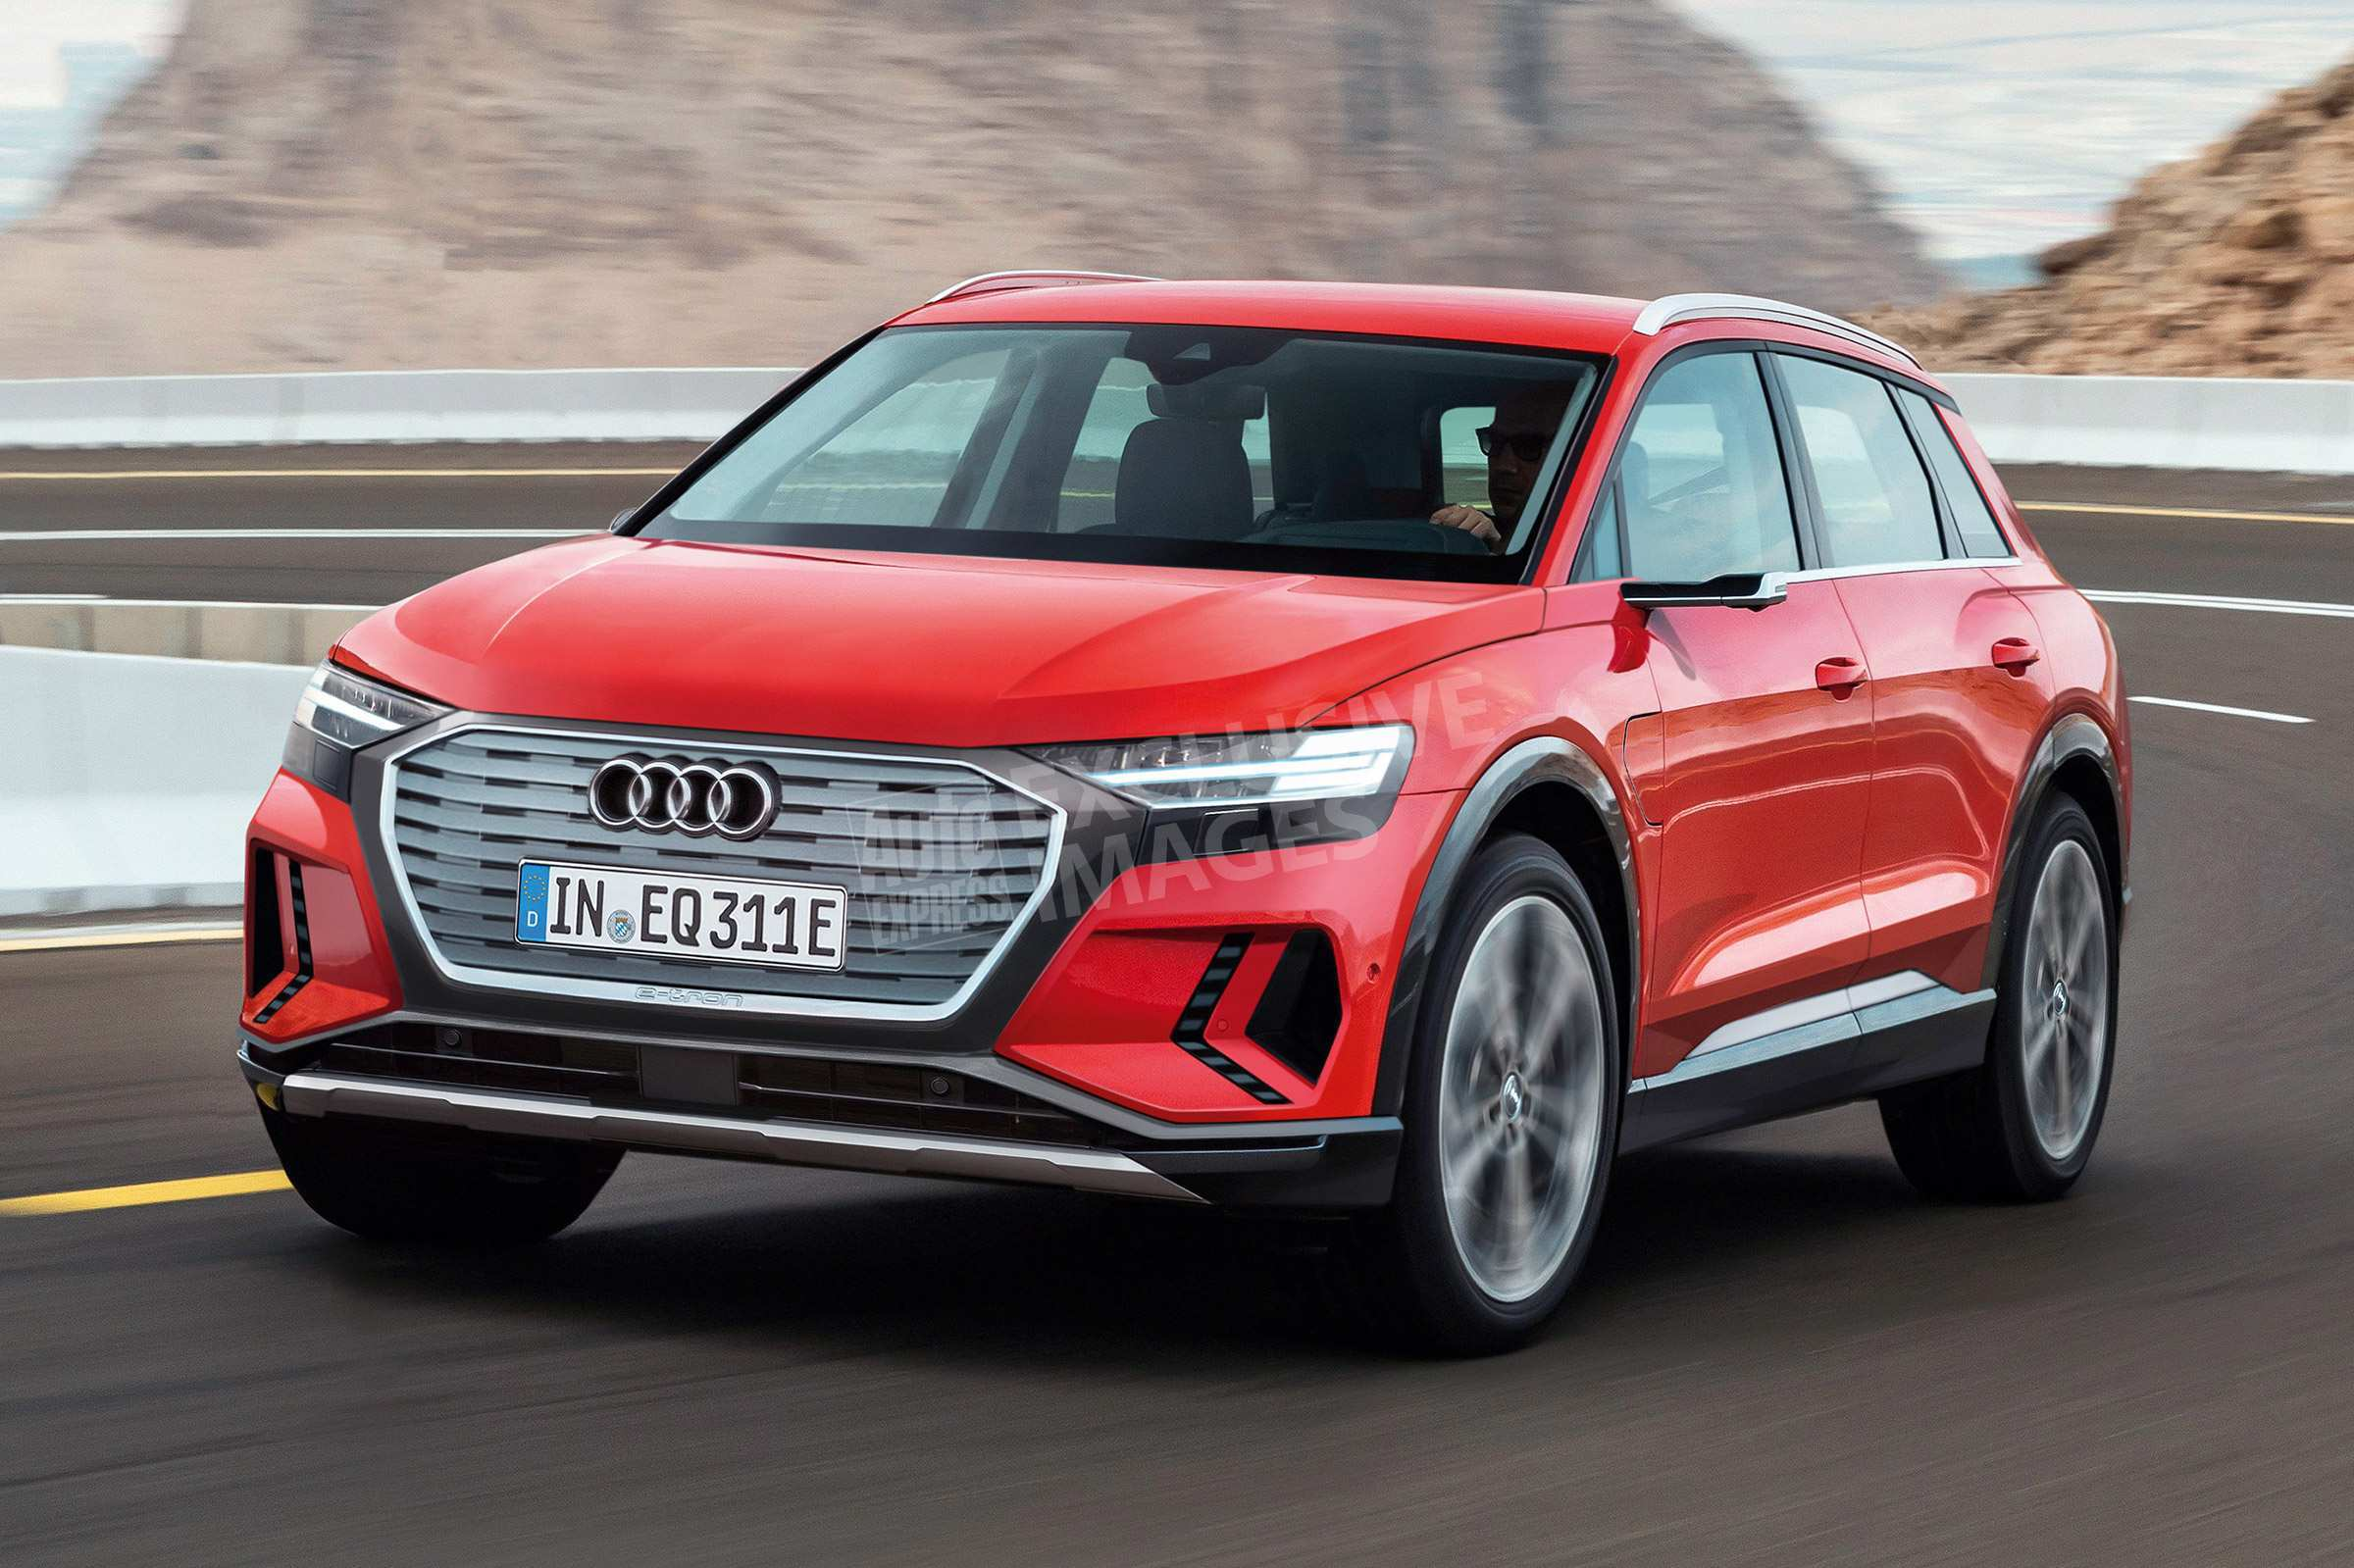 19 New Audi E Tron Suv 2020 Pictures